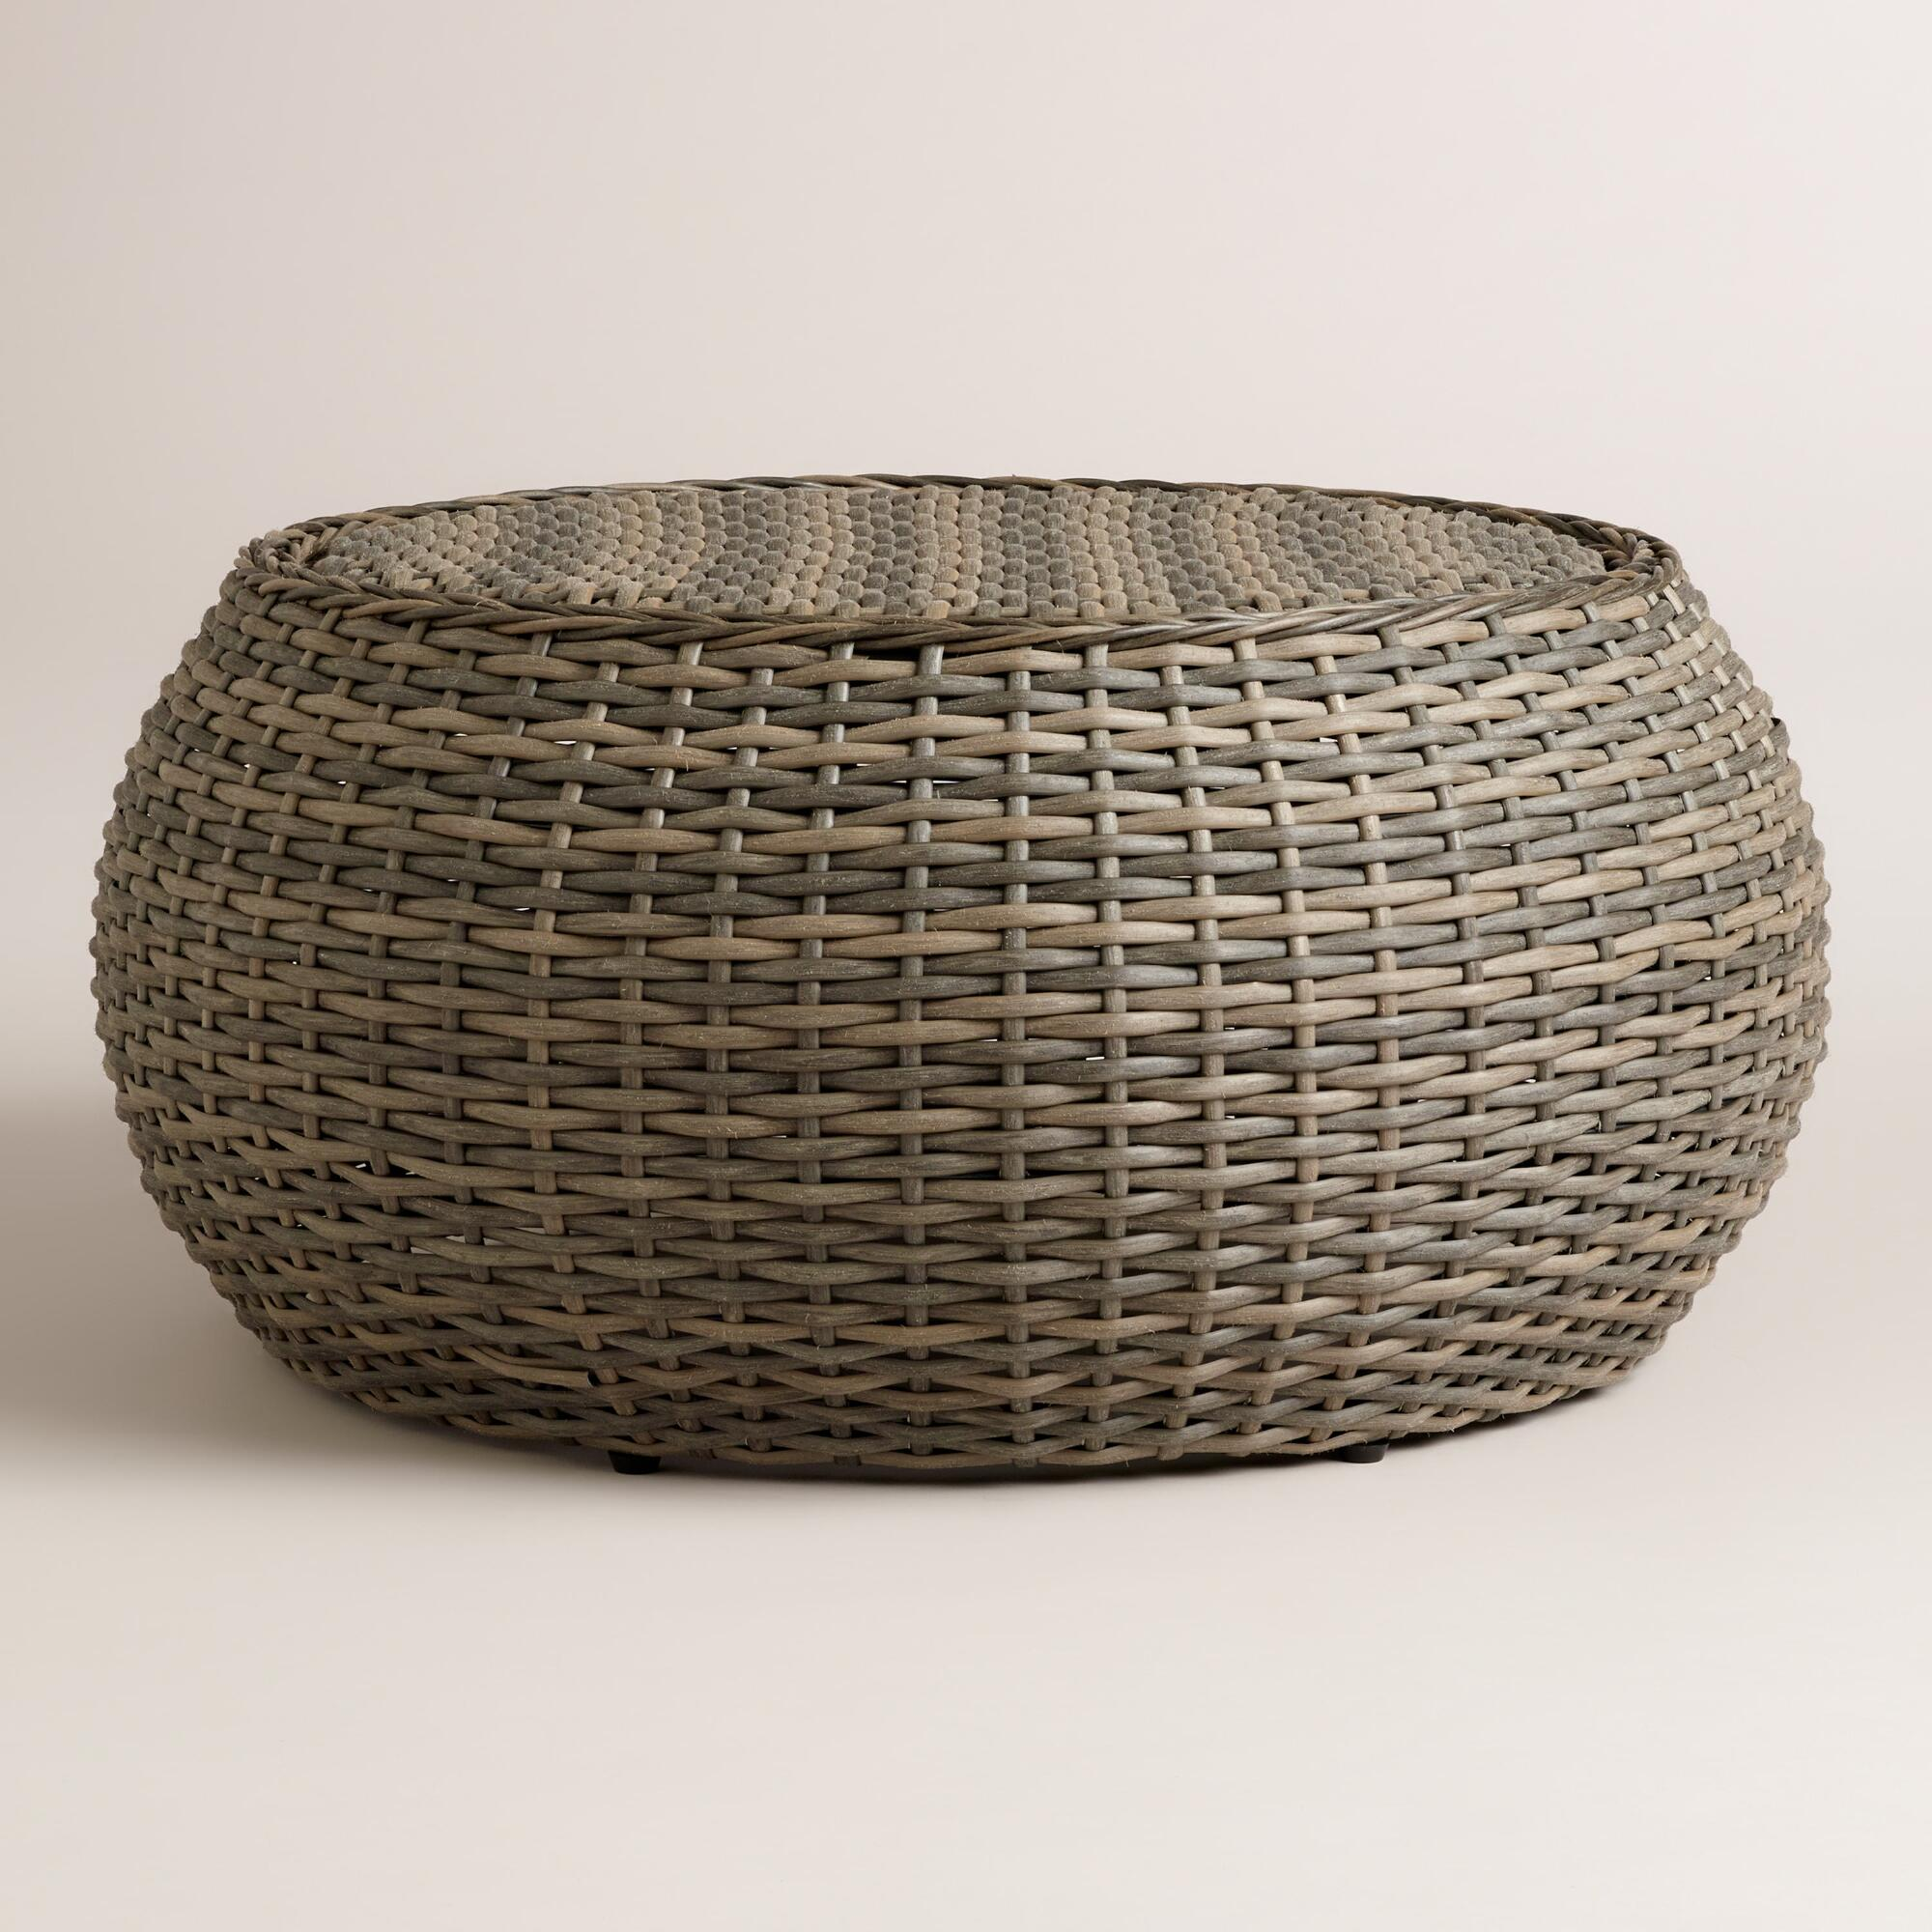 All weather wicker formentera egg coffee table world market Coffee table with wicker baskets